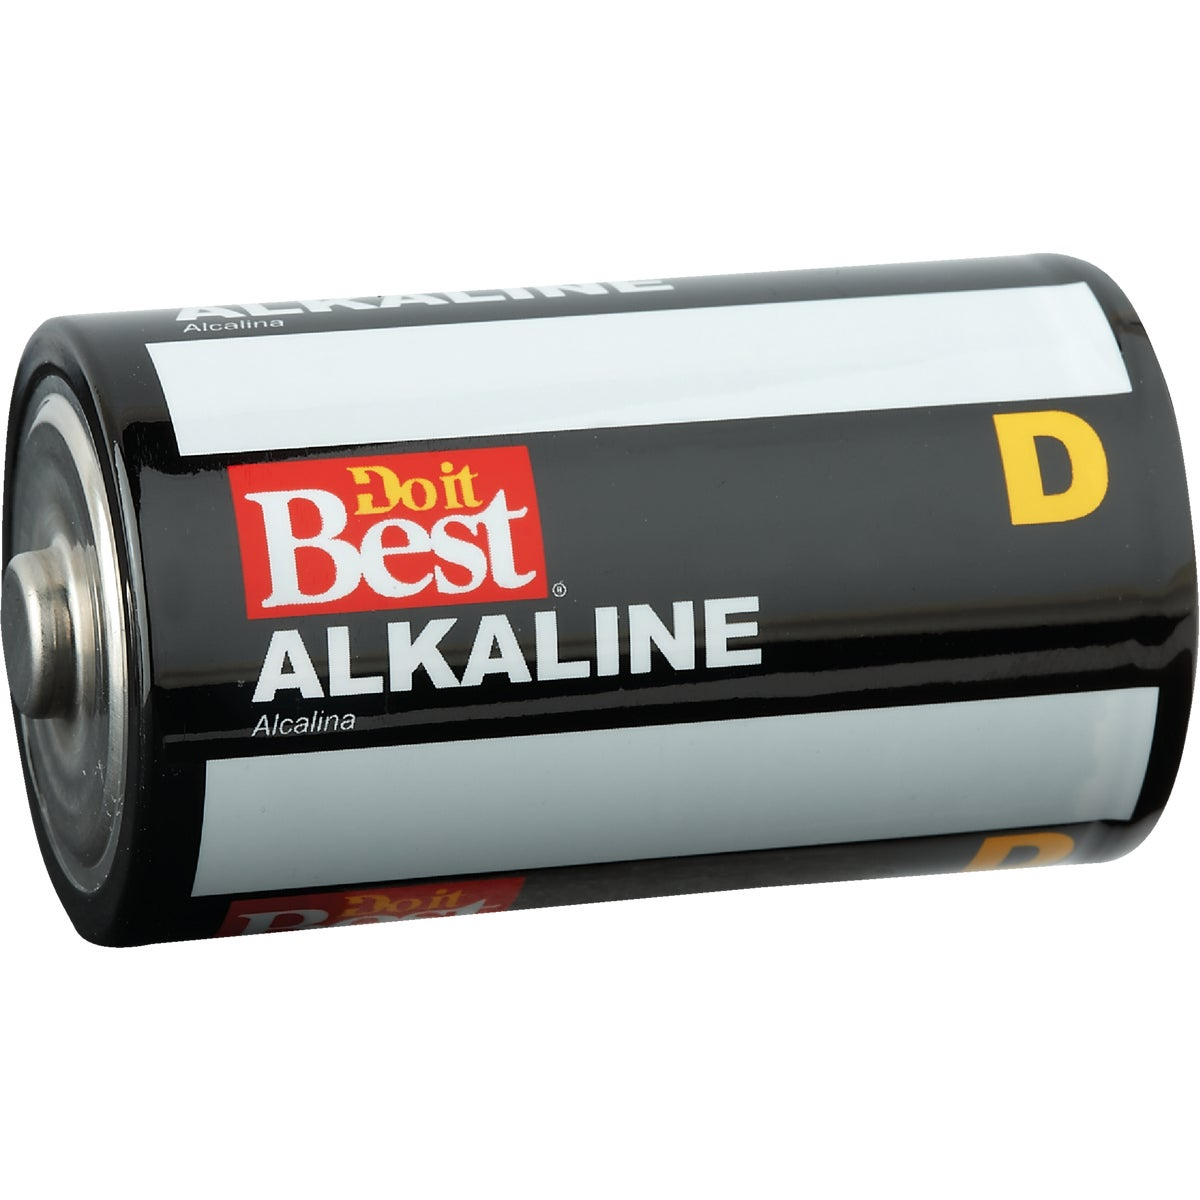 4PK DIB D ALK BATTERY - DIB813-4 by Ray O Vac